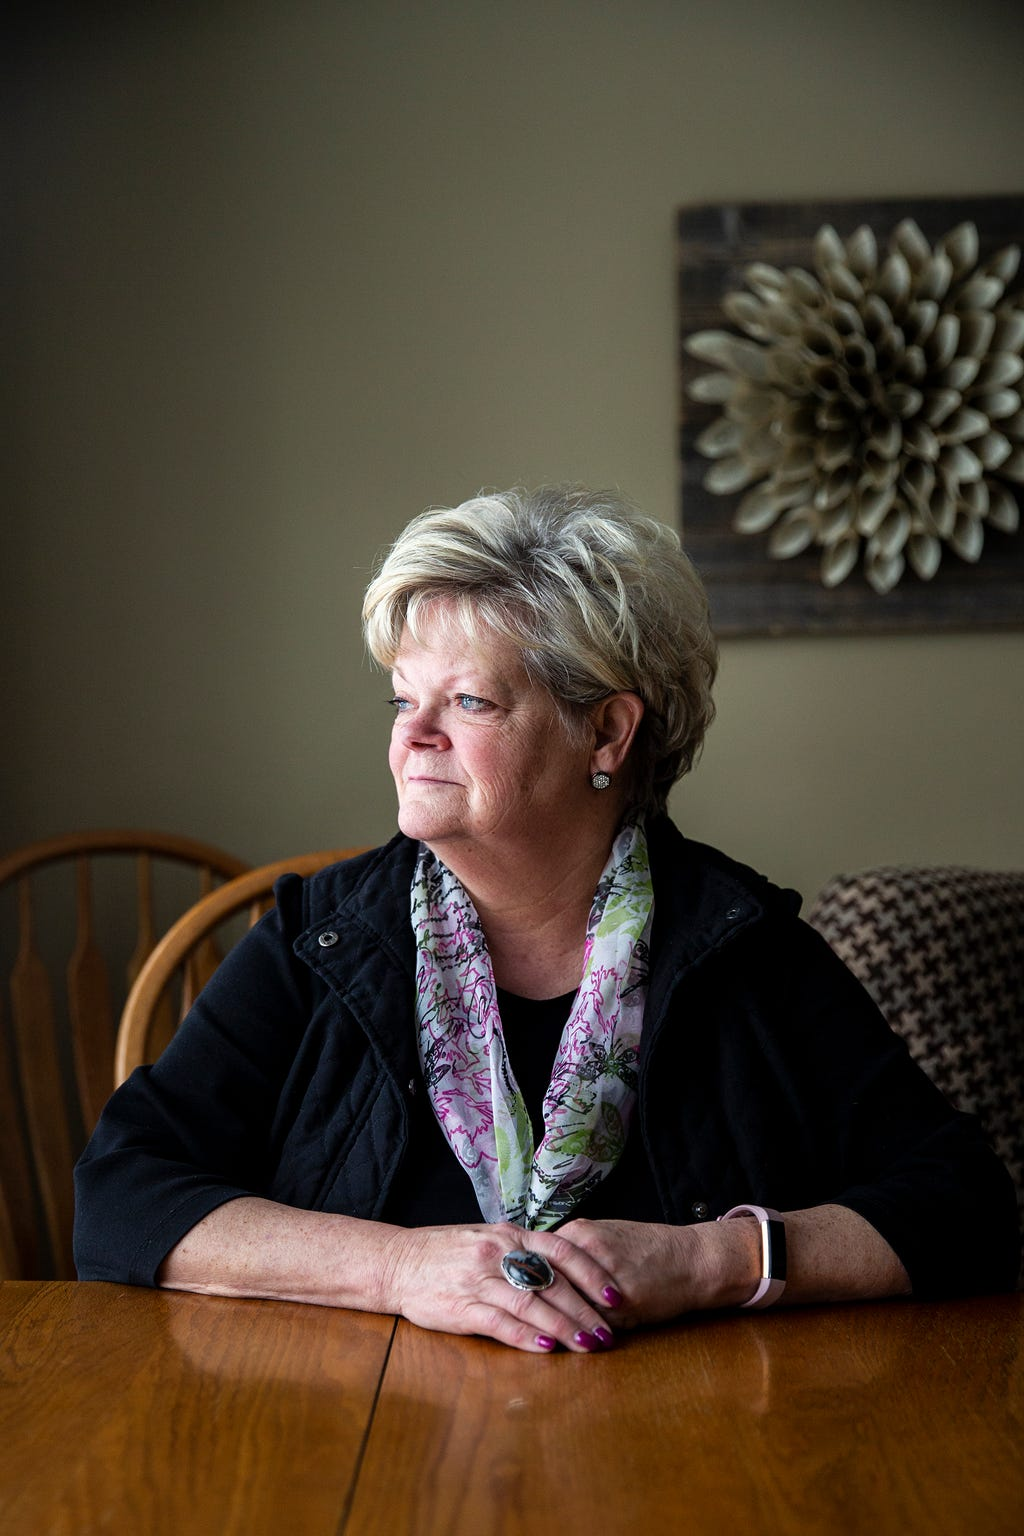 Kathy King looks out the window of her home on Thursday, March 7, 2019, in Glenwood. King worked at the Glenwood Resource Center for 43 years, most recently as a treatment program administrator. The resource center is one of two facilities in Iowa serving people with  intellectual disabilities, many who require constant and continuous medial supervision. King is now a guardian for two residents and has become concerned with the changes made over the last year to the resource center's medical services.